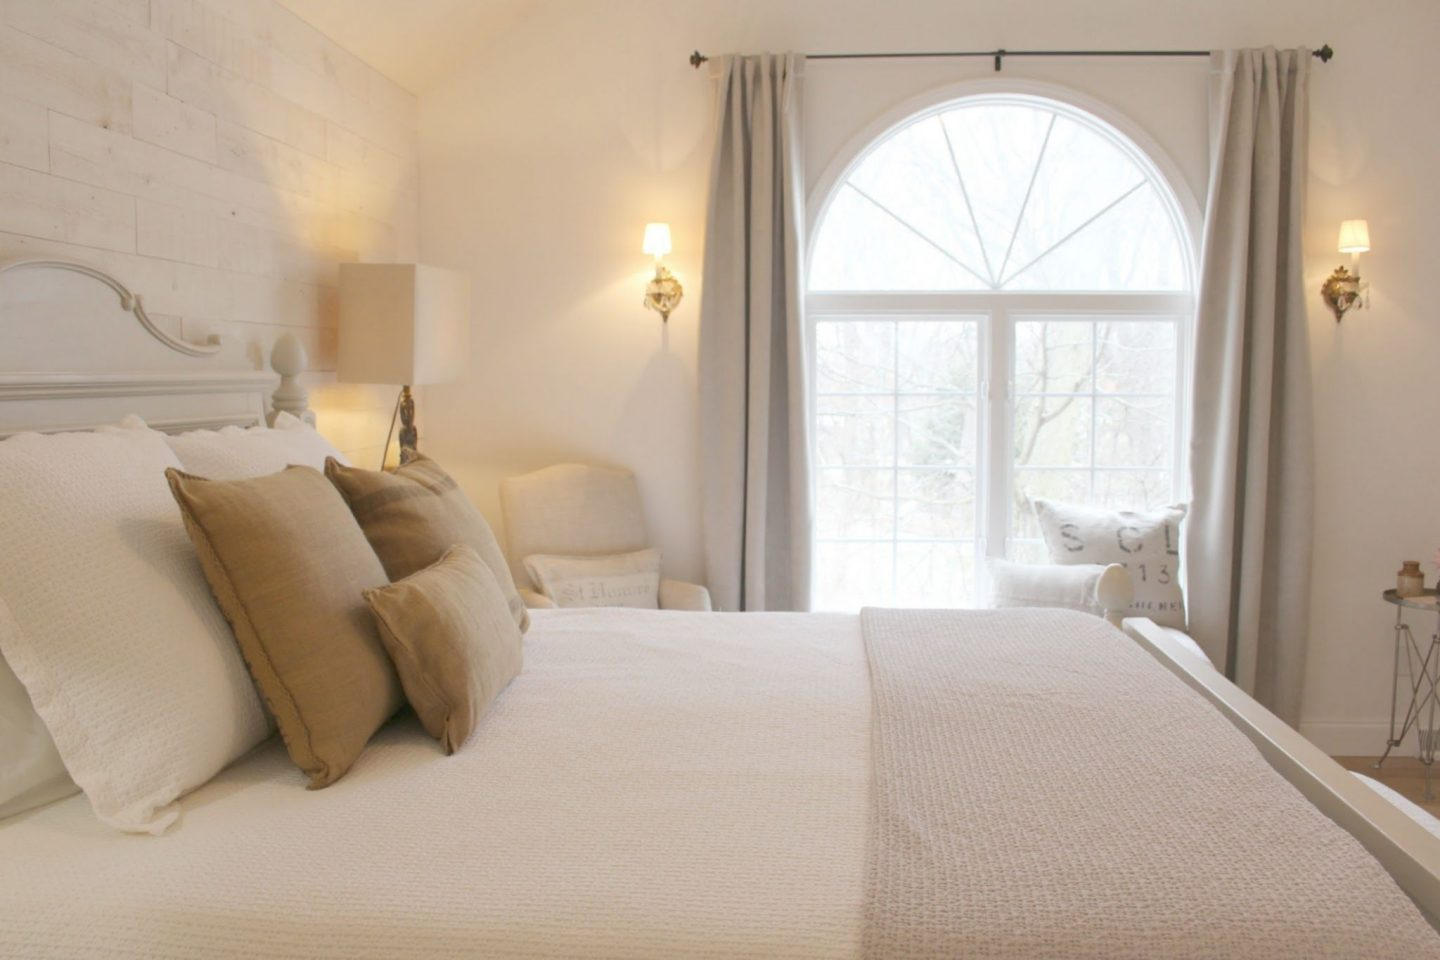 Nordic French cottage bedroom with neutrals and white. Come see renovation photos in Before & After: My Home Renovation.